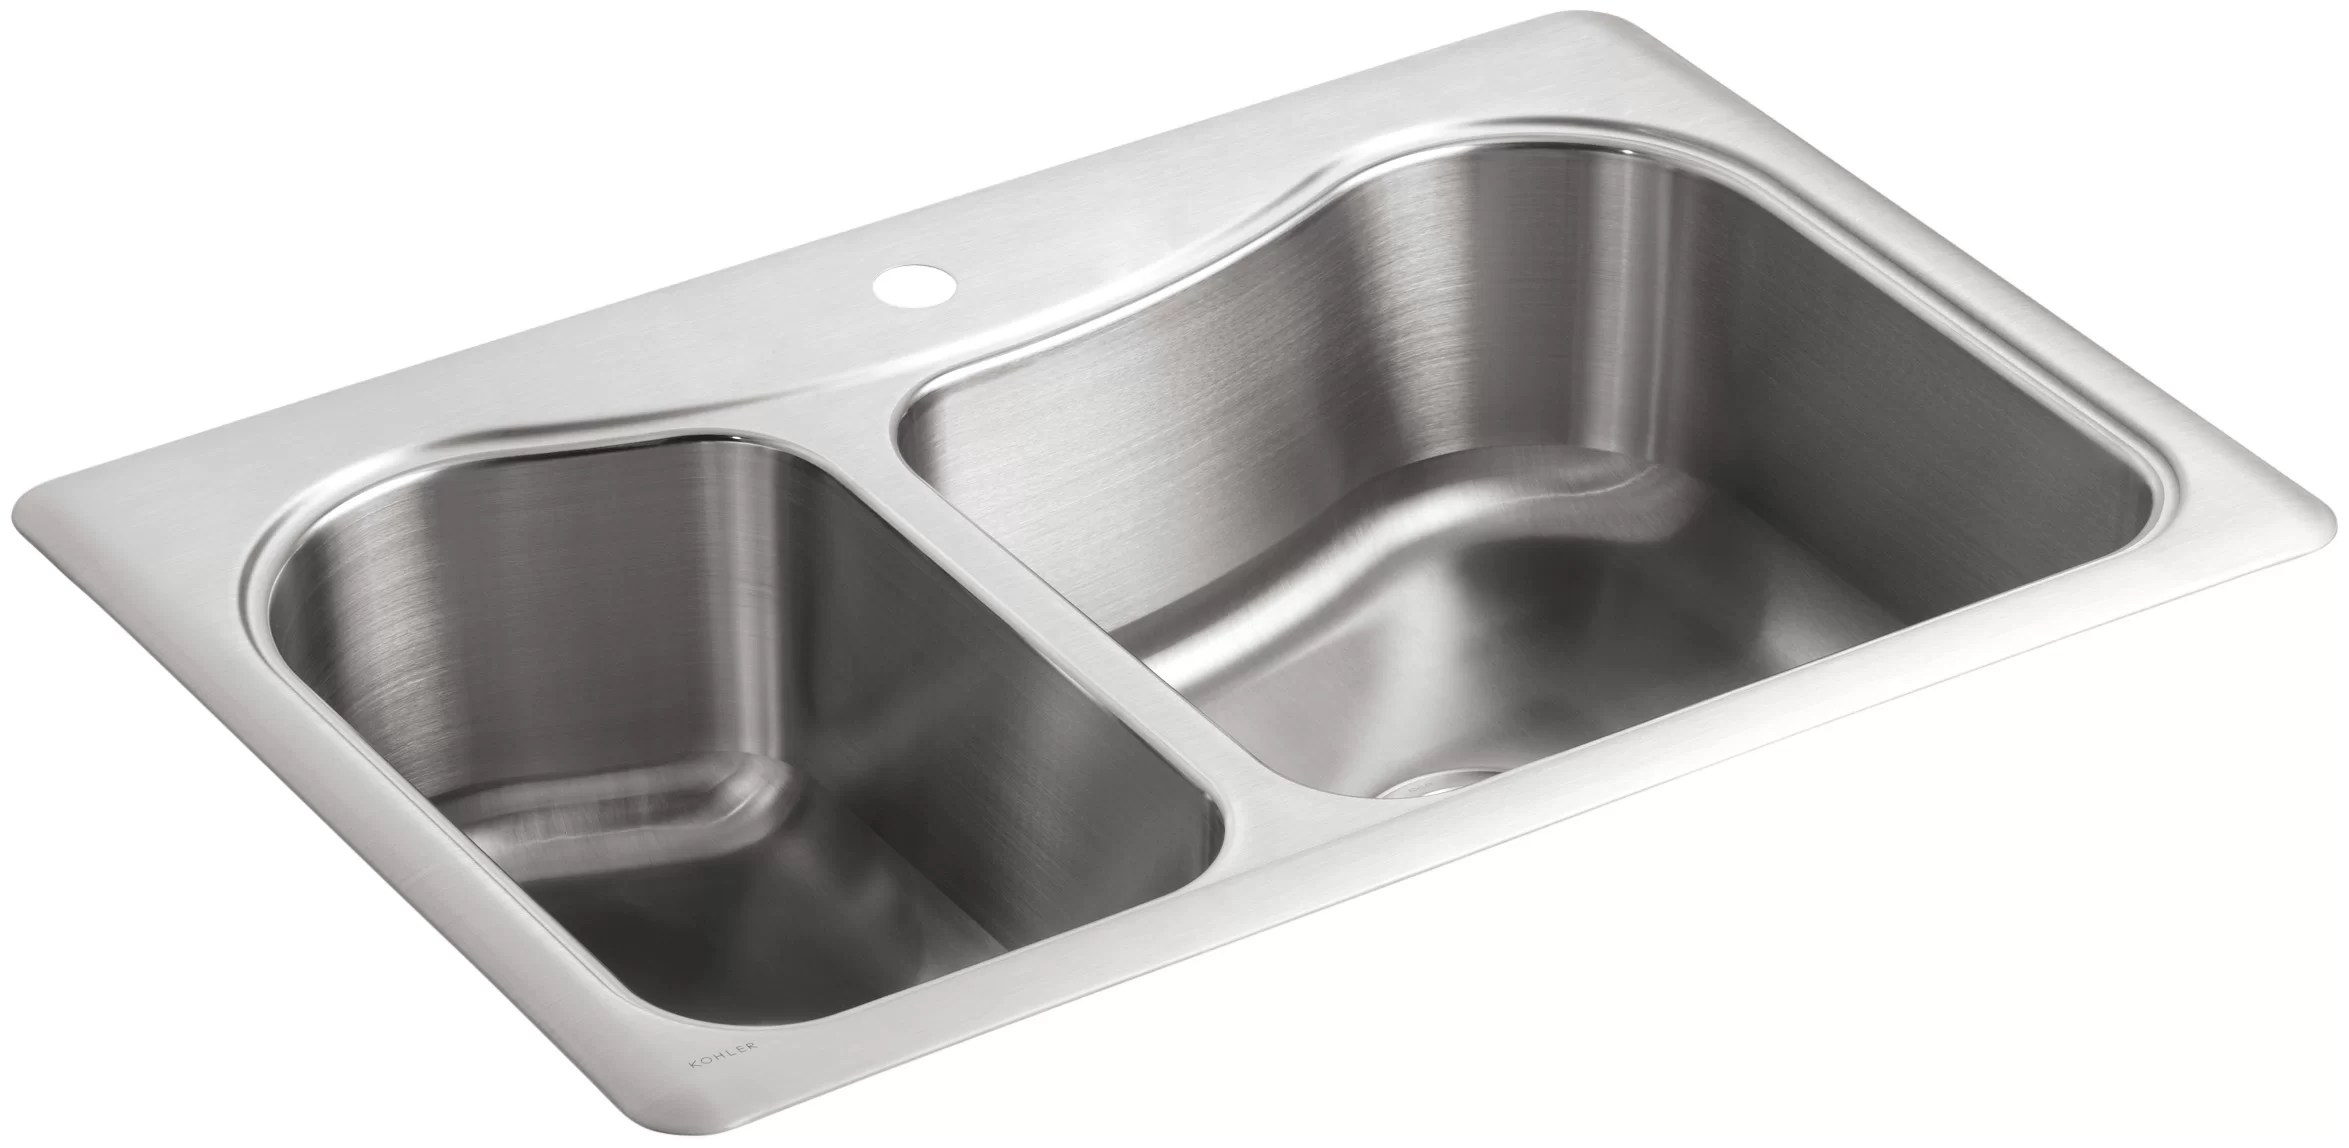 k 3361 1 na kohler staccato 33 l x 22 w drop in kitchen sink with single faucet hole reviews wayfair